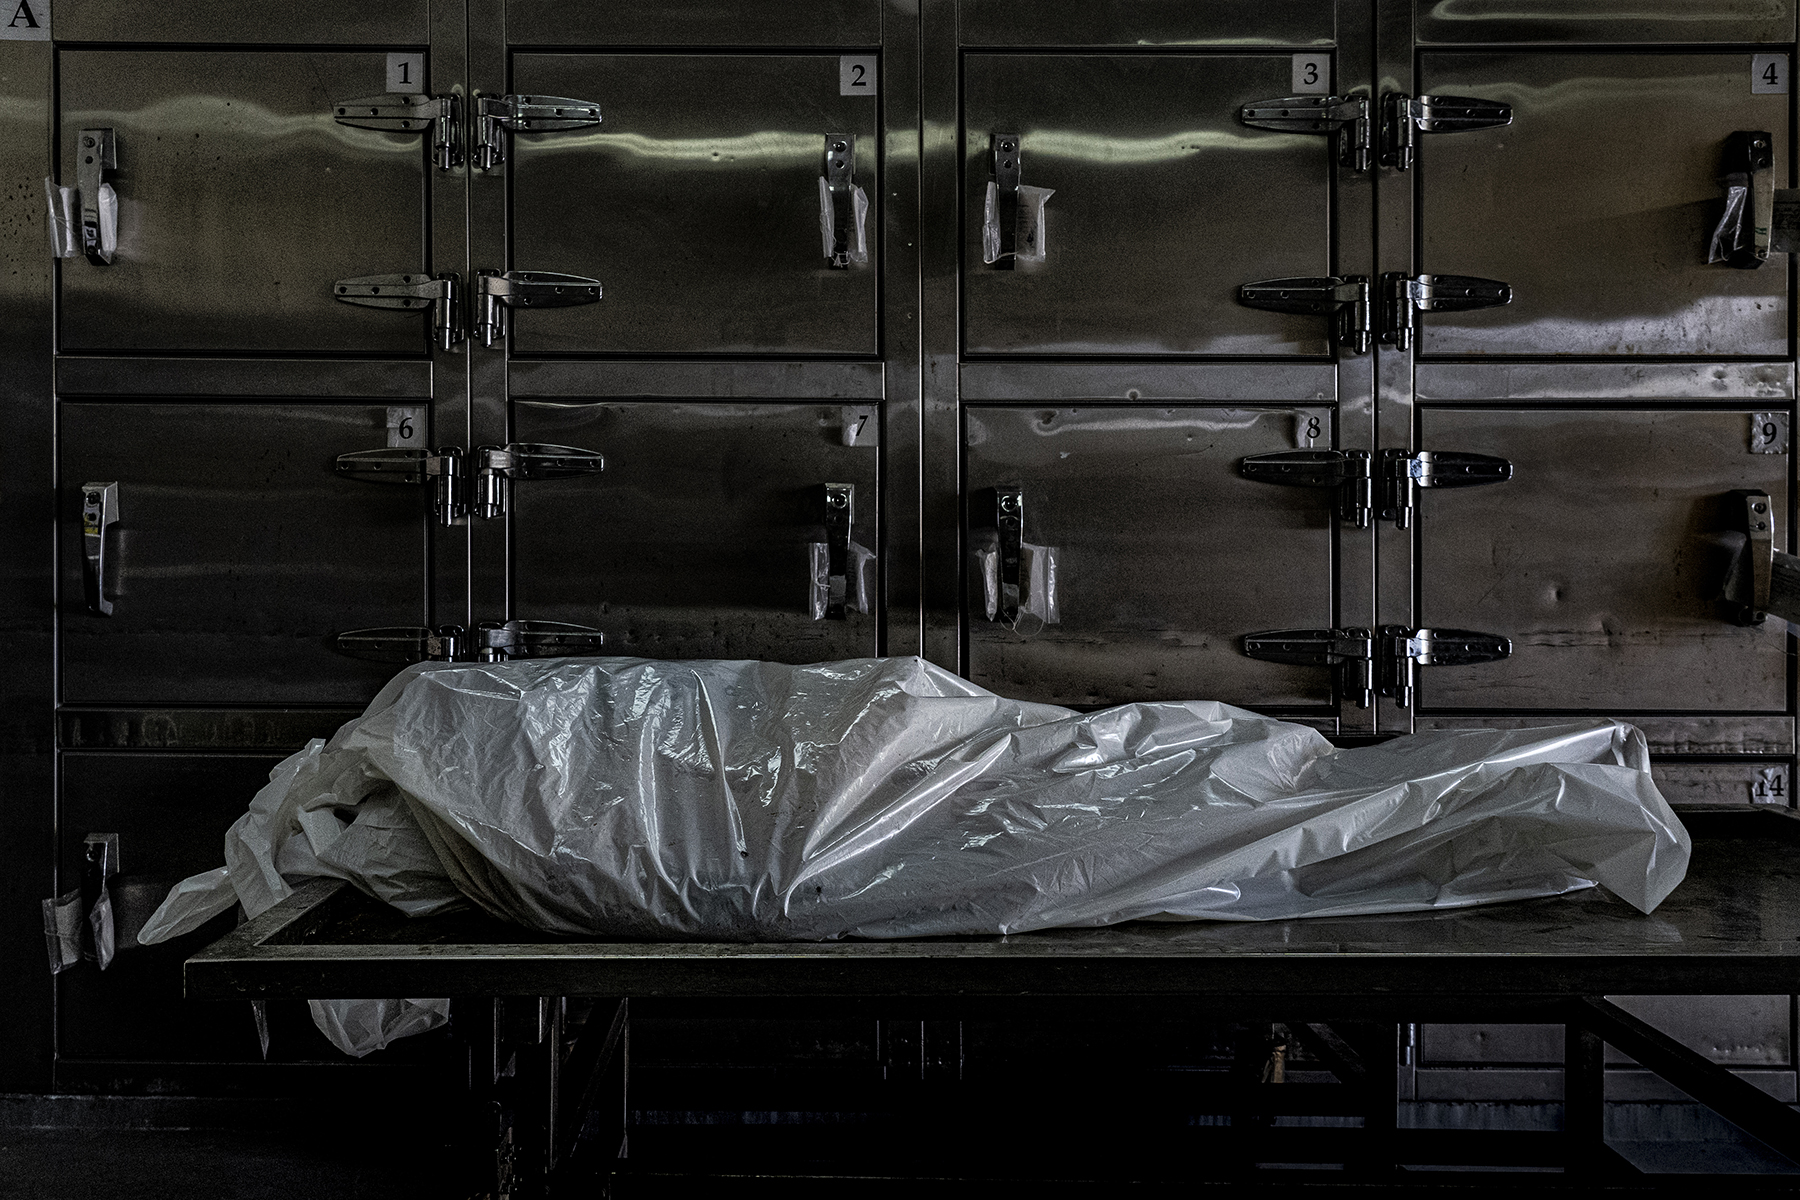 The body of Eduardo Castillo Calles, 54, nicknamed Limonada (Lemonade), lies in the autopsy room of the Institute of Legal Medicine in San Salvador on Oct. 4. He was a farmer and former soldier who formed a vigilante group to kill members of MS-13 near the El Tigre hamlet. Castillo Calles killed at least 15 members of MS-13, according to police, and they suspect his death was likely revenge from members of the gang.